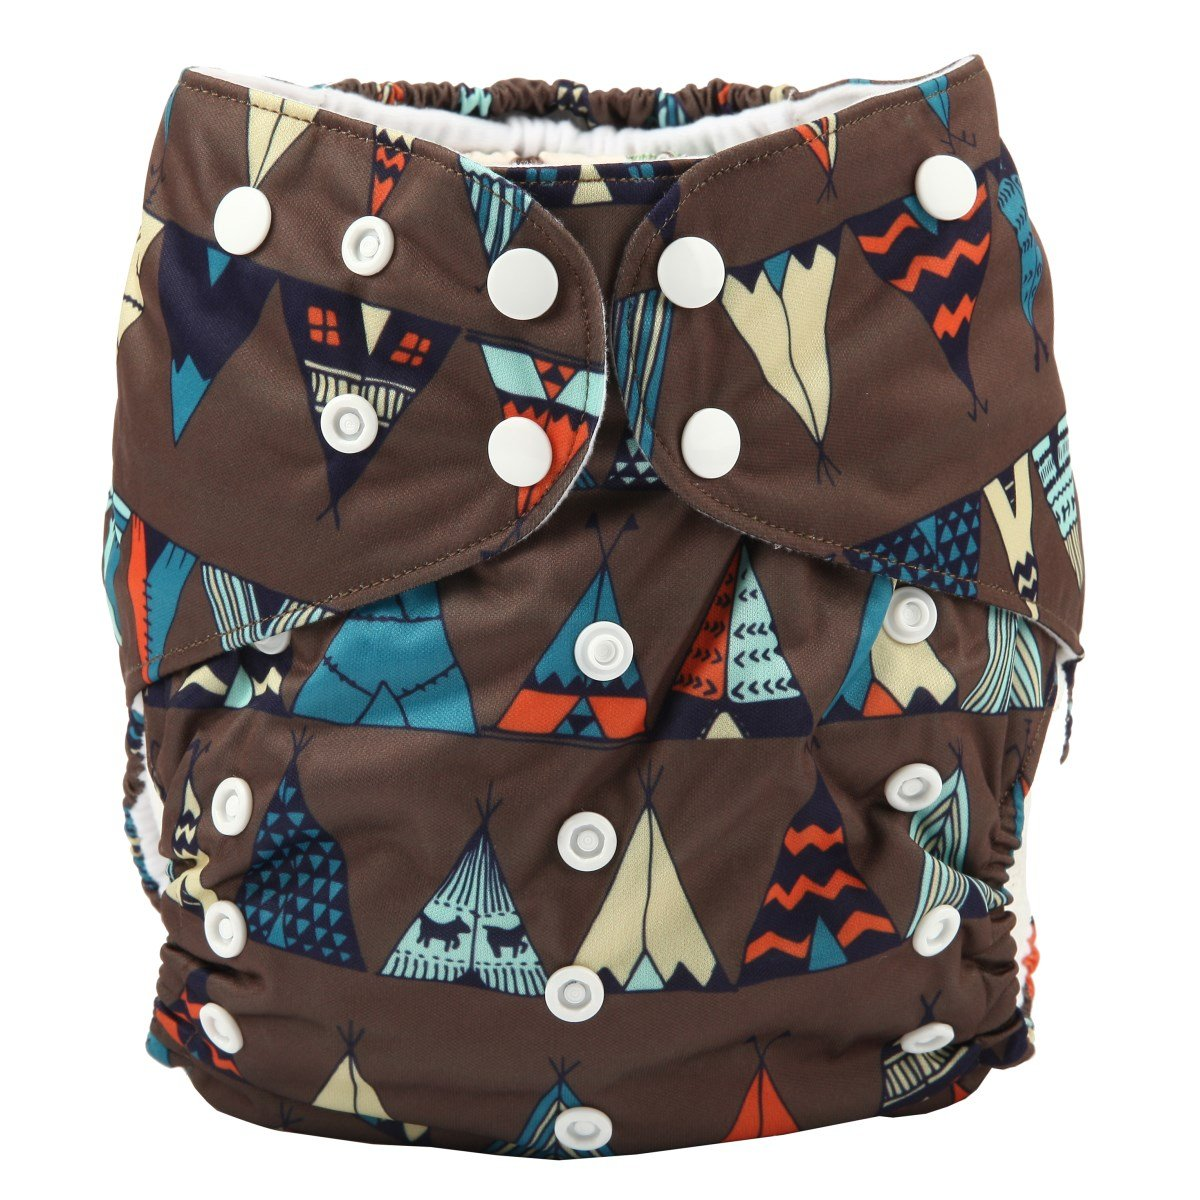 Sigzagor 2 to 7 years old Junior Big Cloth Diaper,Nappy,Pocket Reusable Washable,Baby Kids Toddler Stars